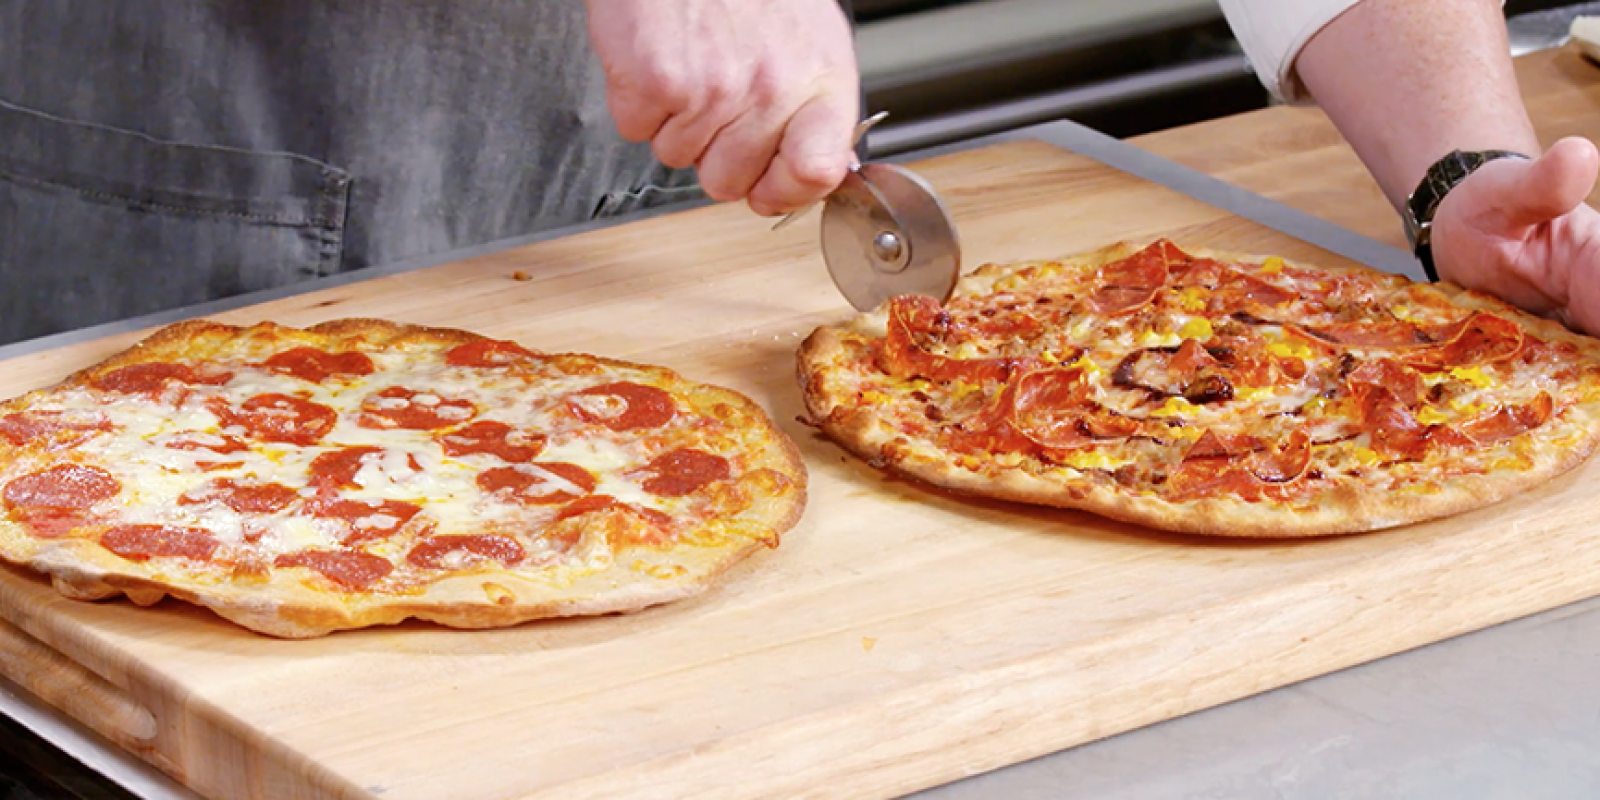 Andrew Zimmern Cooks Homemade Pizza With Peter Campbell Andrew Zimmern